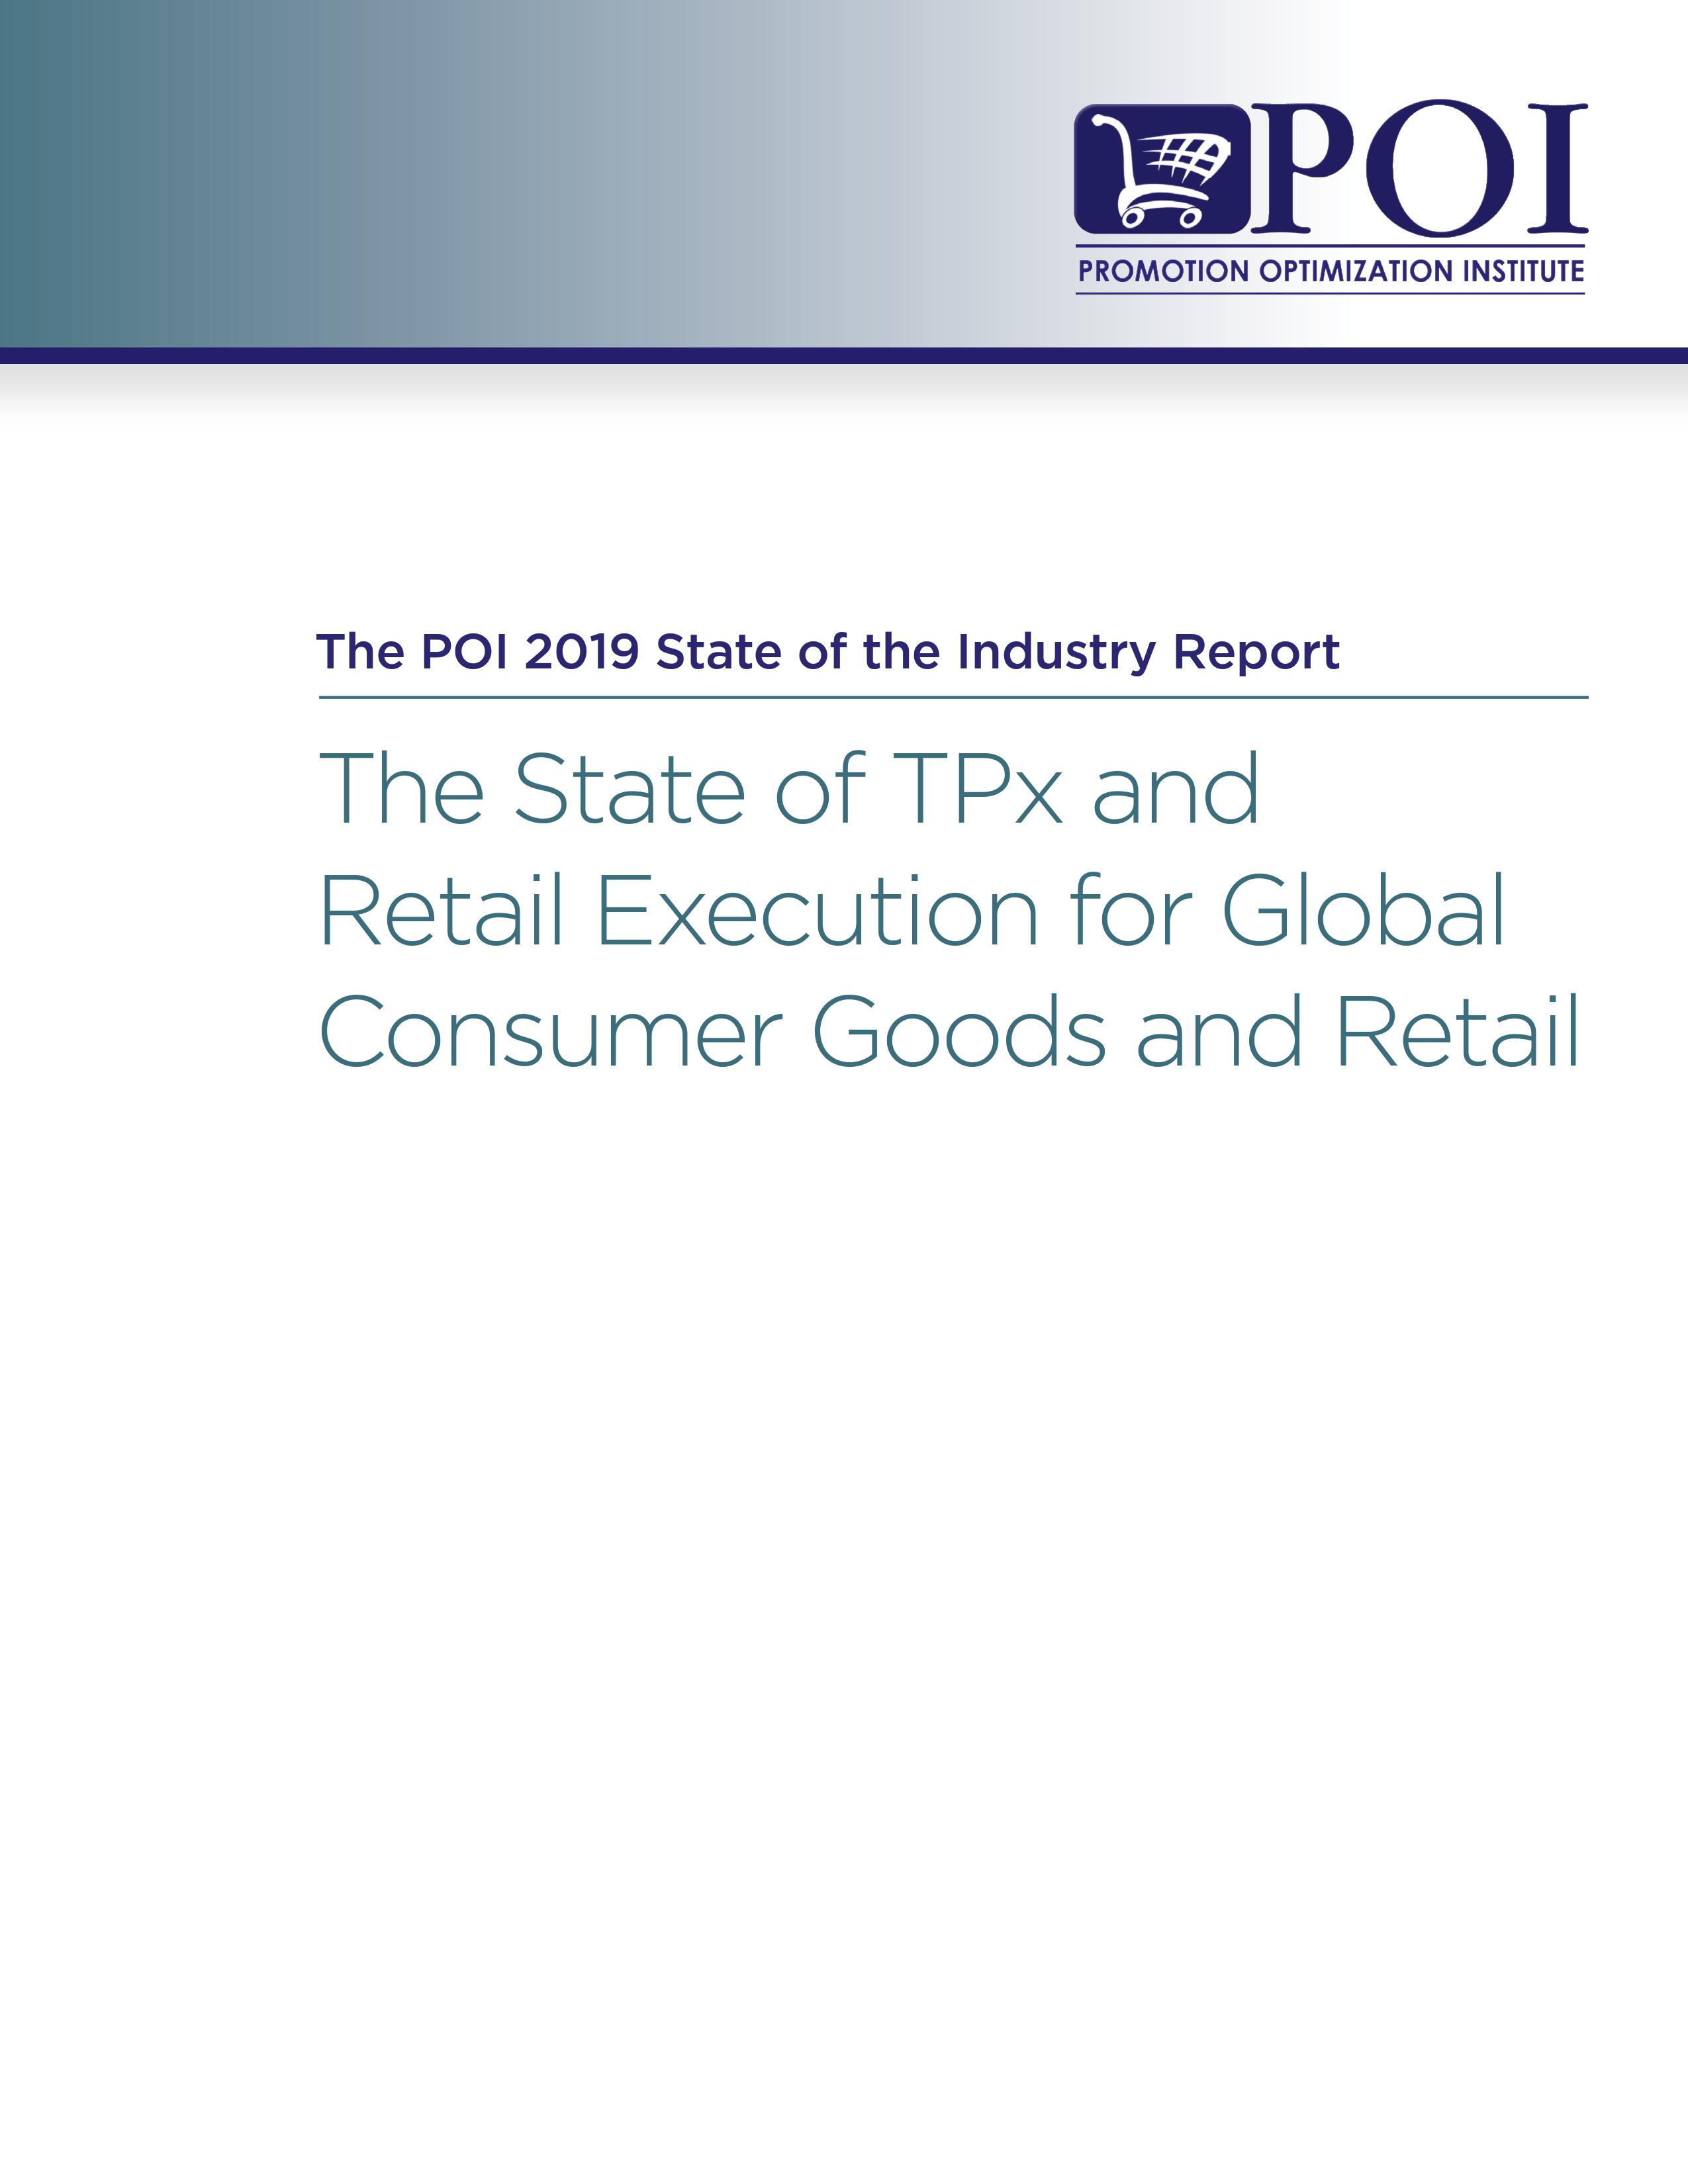 2019 State of Industry Report Cover .jpg